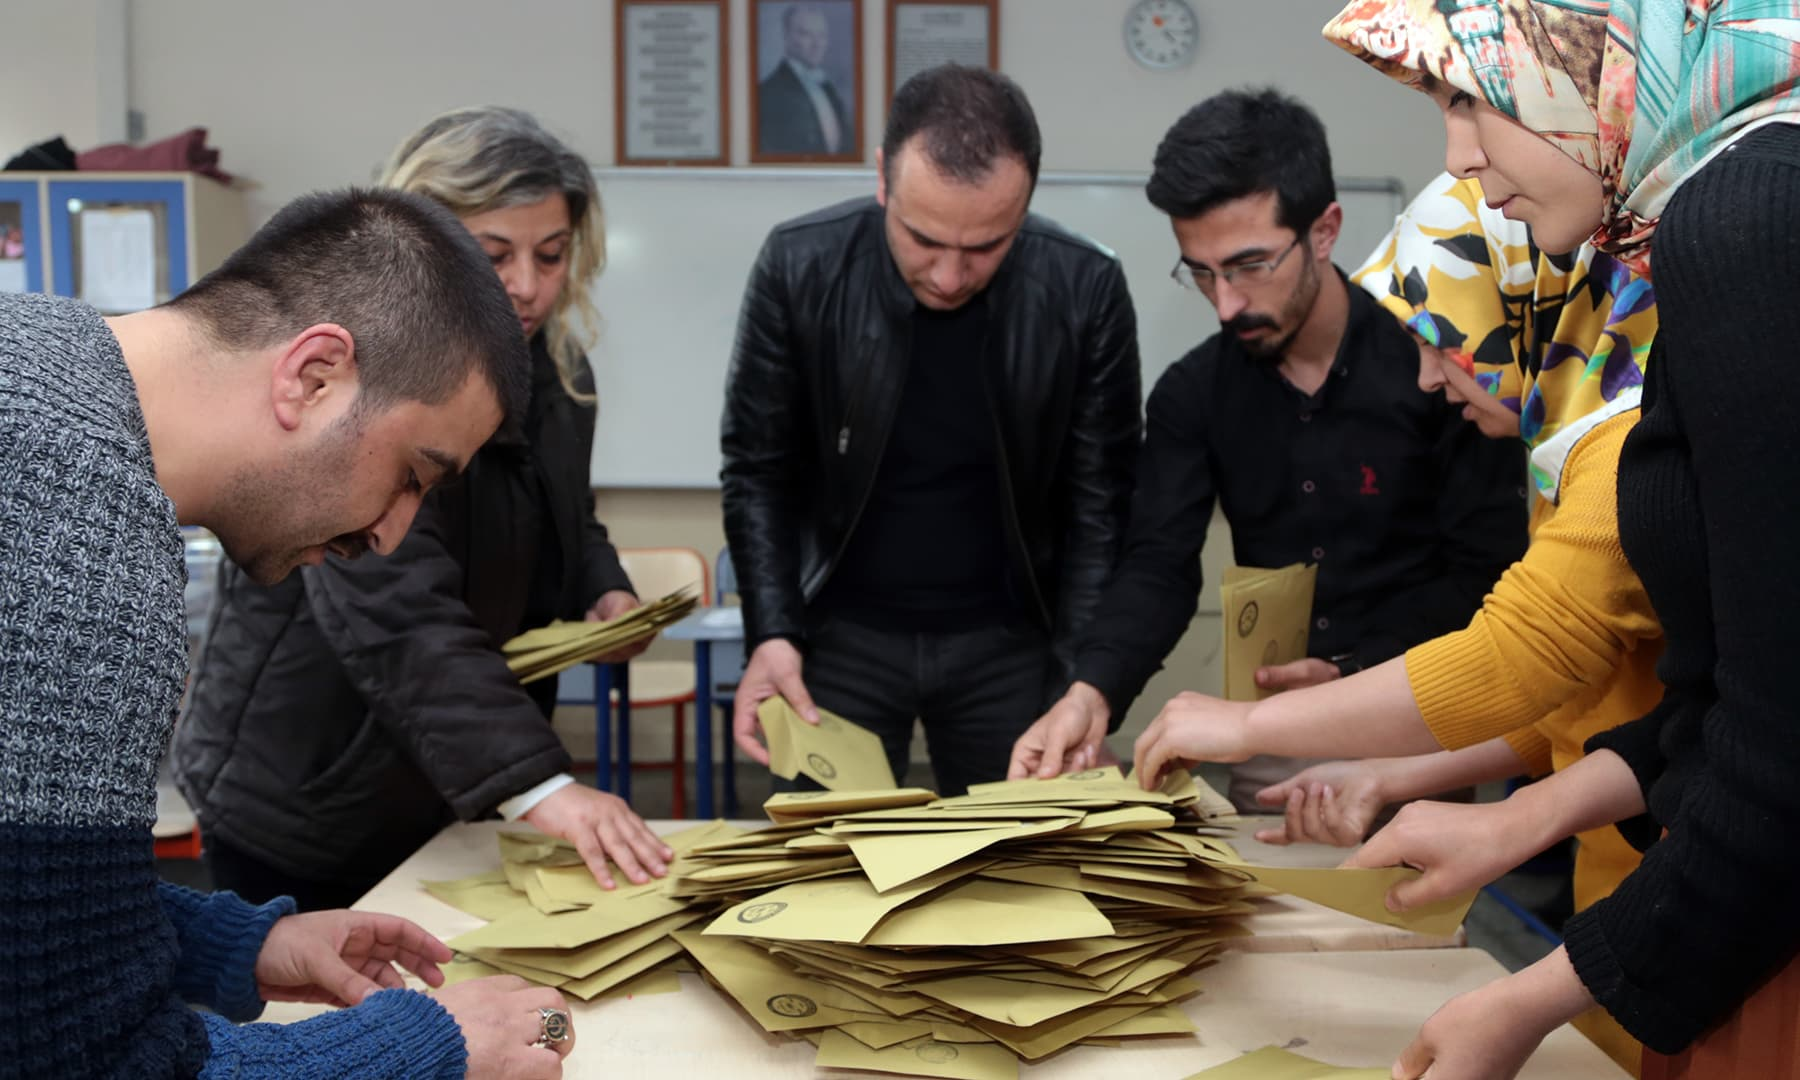 Scrutineers count votes after the polls for the local elections closed at a polling station in Kahramanmaras, Turkey on March 31, 2019. — ©Anadolu Agency